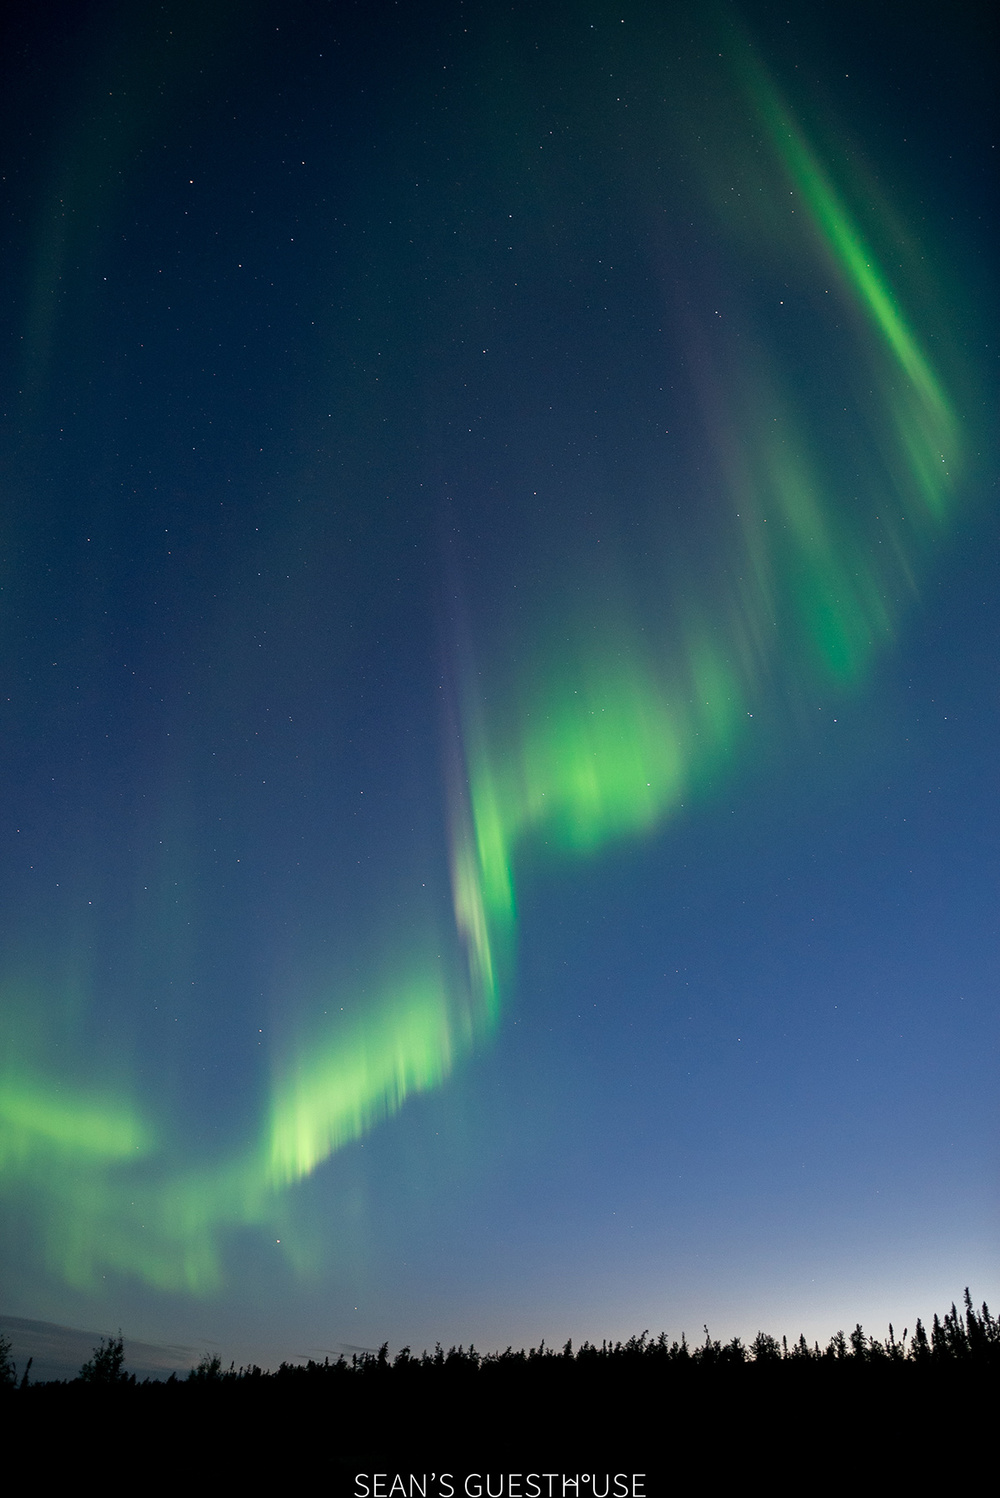 Sean's Guesthouse - Yellowknife Northern Lights - Summer Aurora - 6.jpg